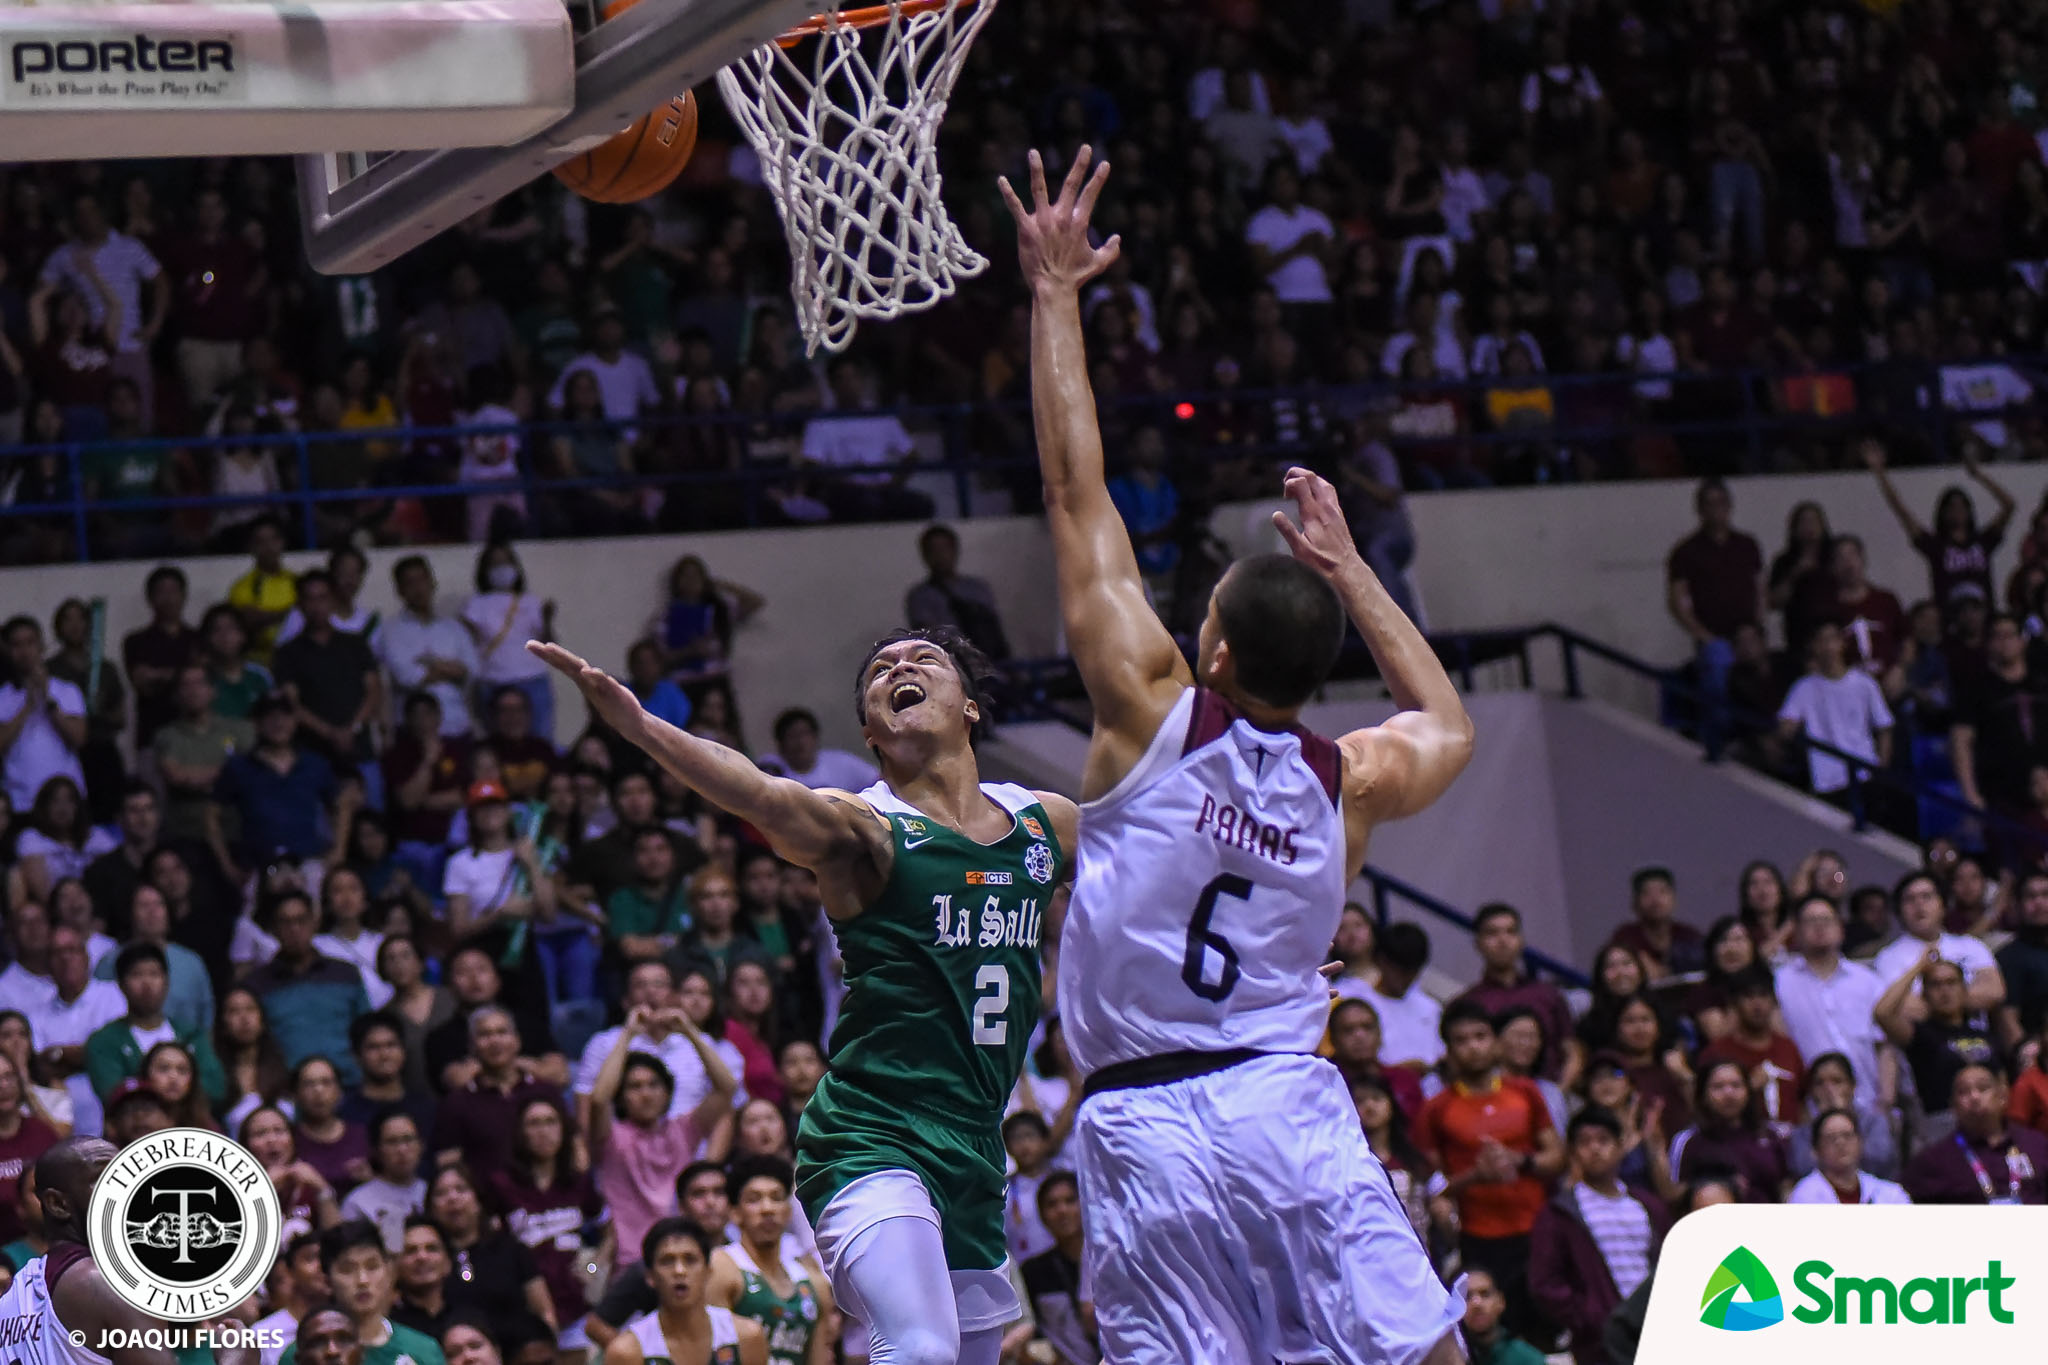 Tiebreaker Times Ailing Encho Serrano charges costly miss to experience Basketball DLSU News UAAP  UAAP Season 82 Men's Basketball UAAP Season 82 Jermaine Byrd Encho Serrano DLSU Men's Basketball